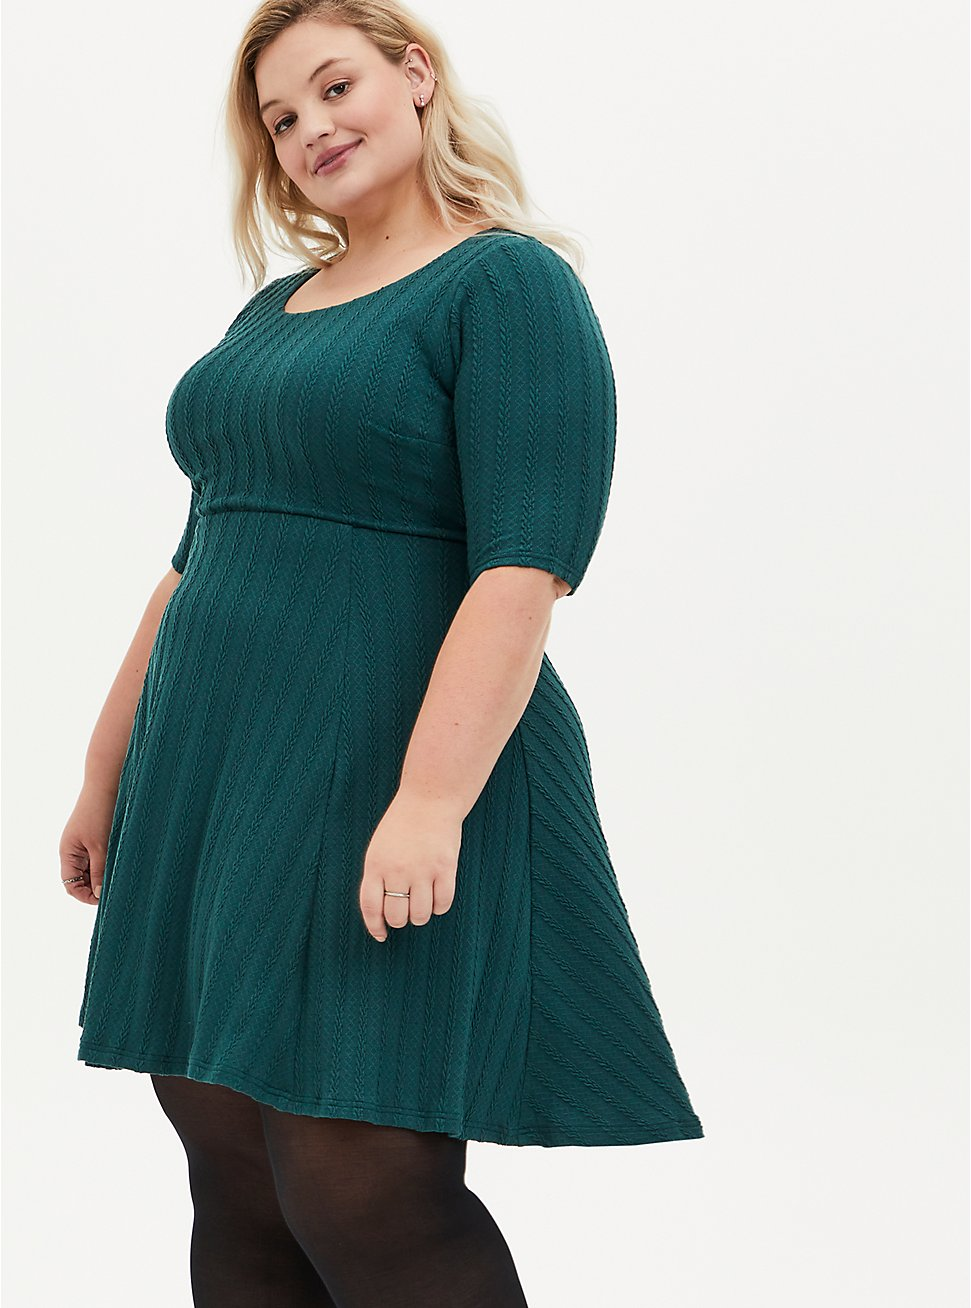 Green Braided Hacci Ribbed Dress, JUNEBUG, hi-res